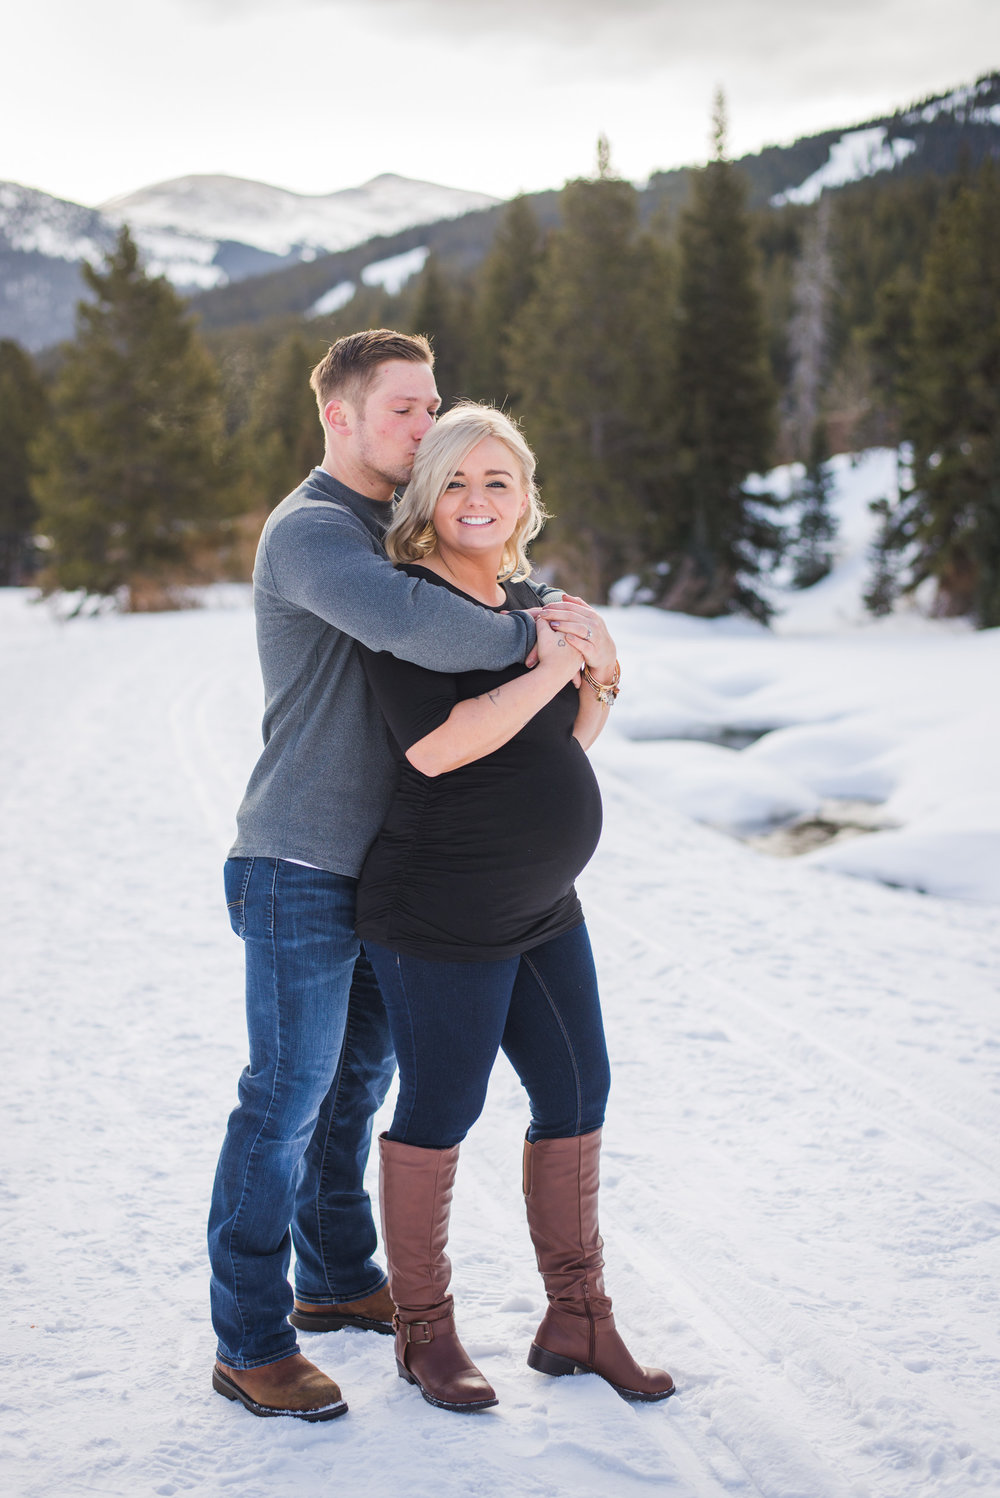 Winter maternity portraits in the Colorado mountains | Hair + Makeup for portrait sessions | Keeping Composure Photography